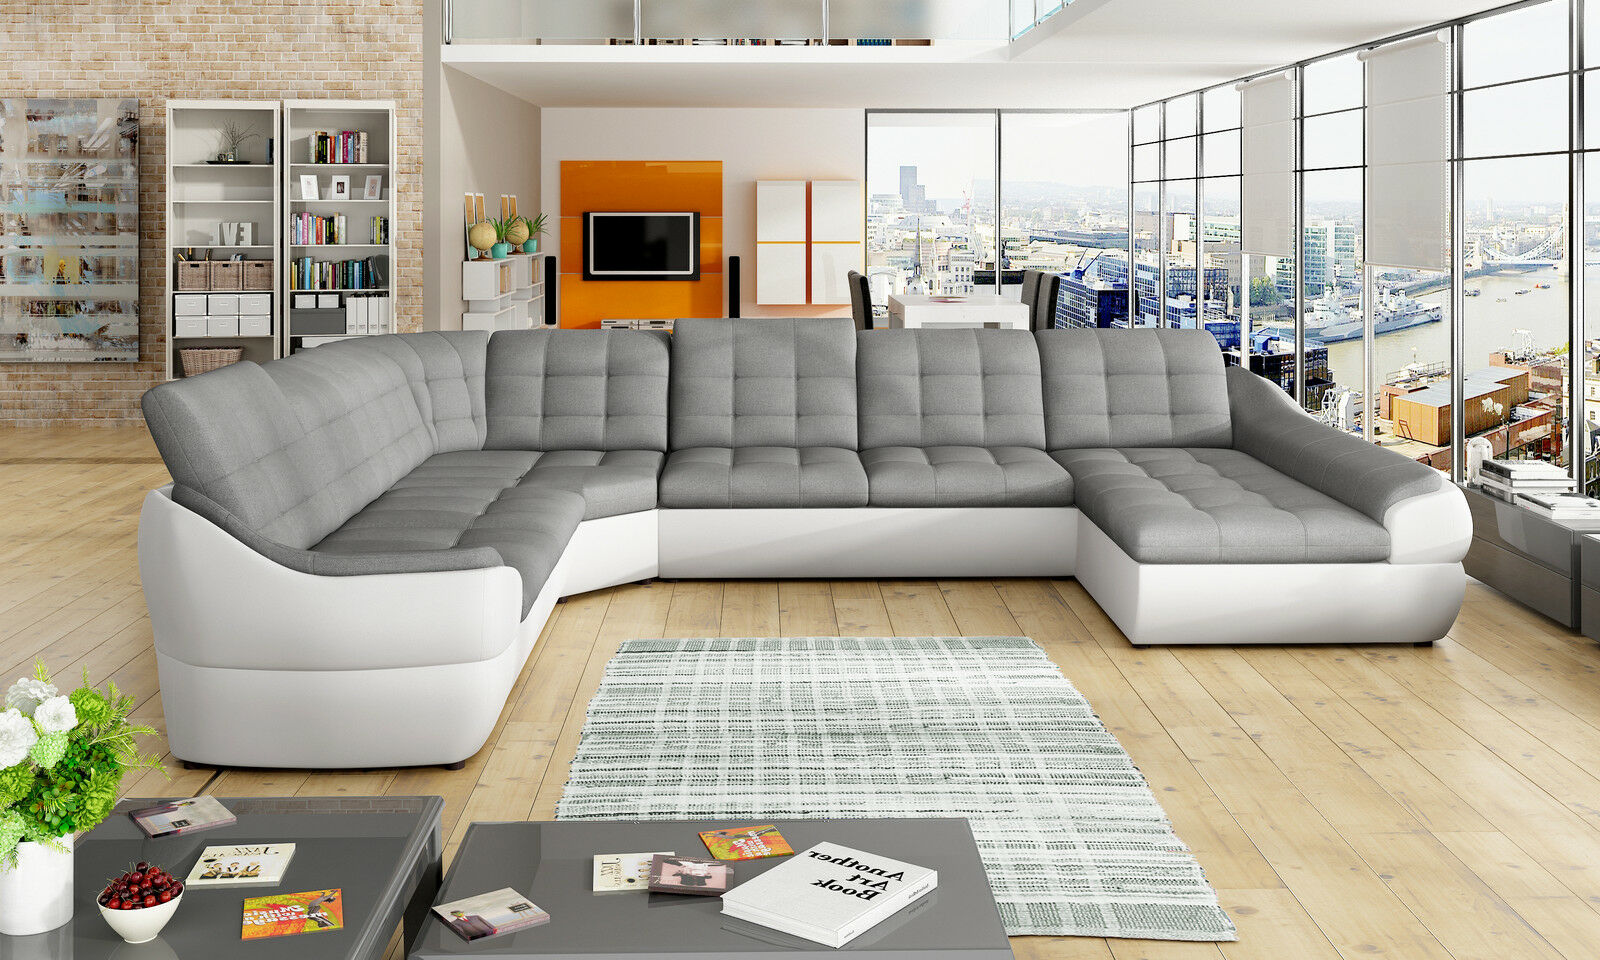 Sofa Mit Relaxfunktion Couchgarnitur Infinity Xl Sofa Mit Relaxfunktion Couch Polsterecke Ecksofa